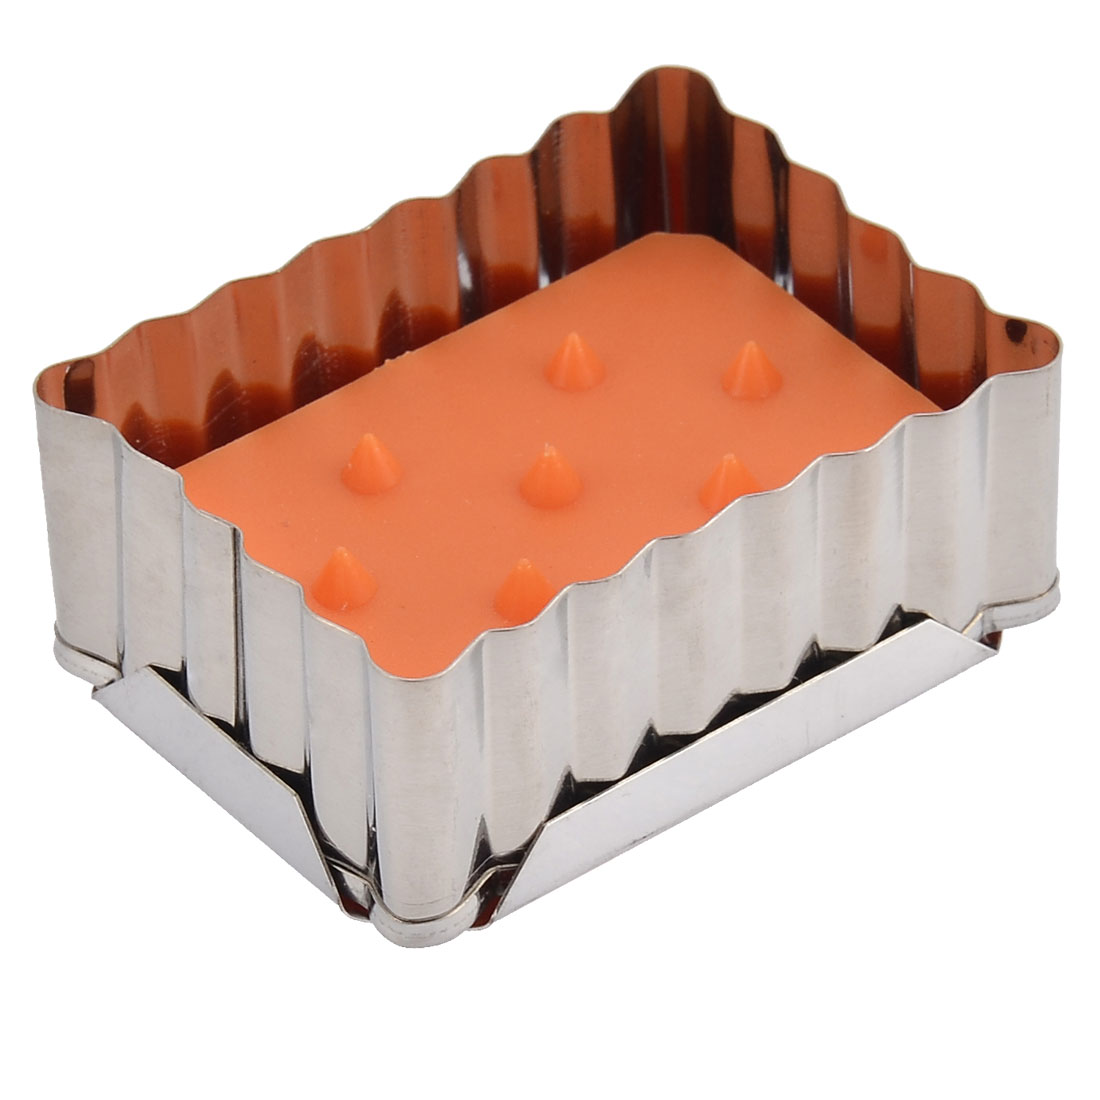 Household Kitchen Metal Rectangle Spring Biscuit Cake Cookie Cutter Mould Mold